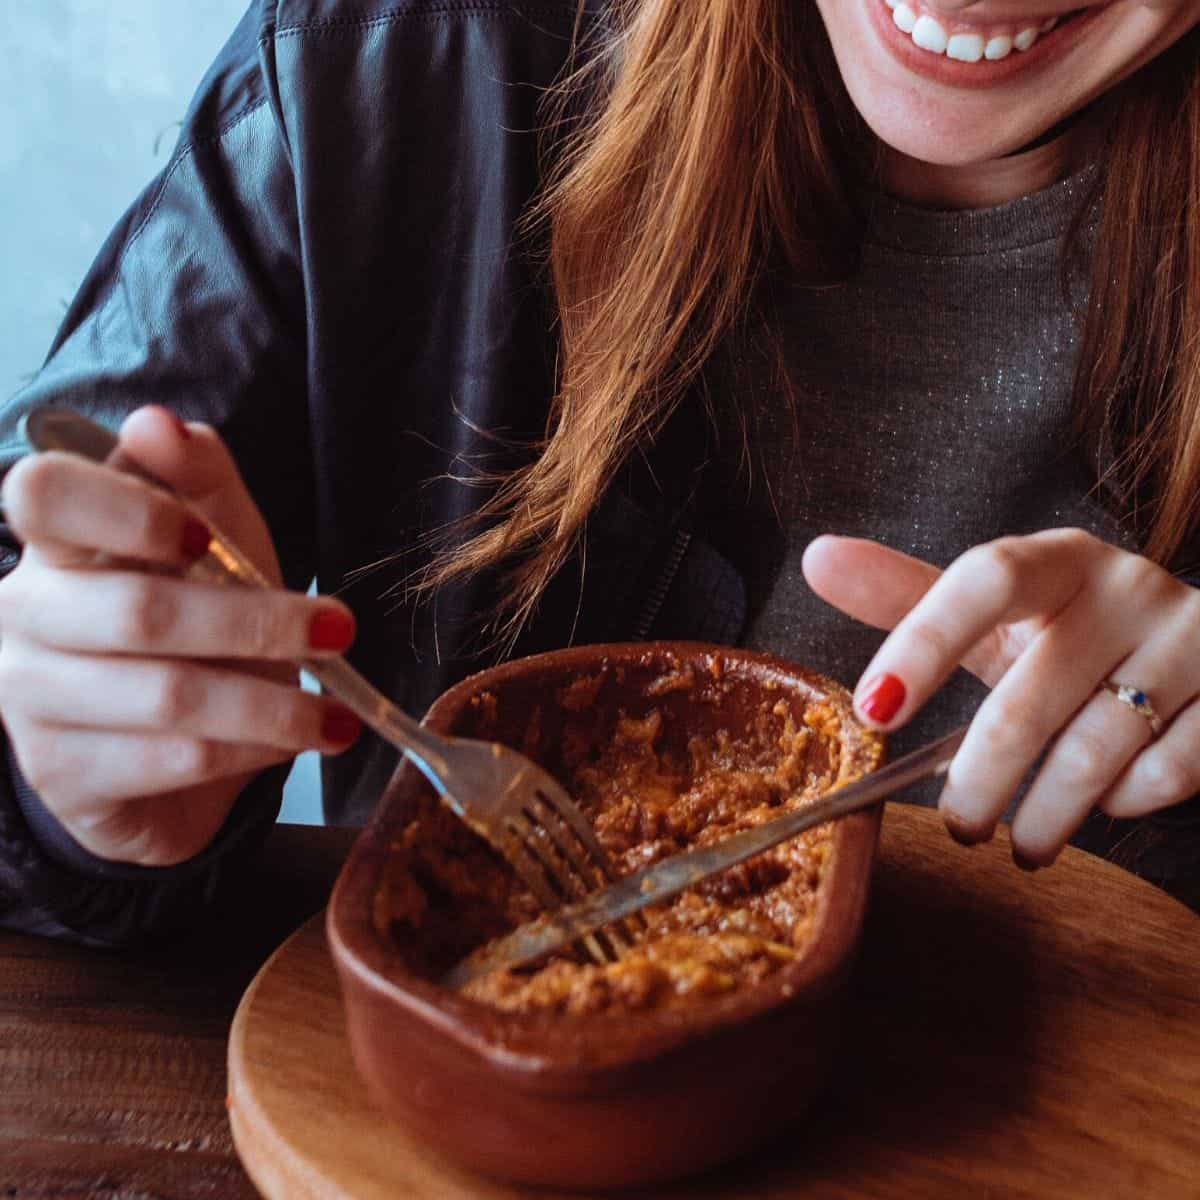 woman eating food out of a bowl